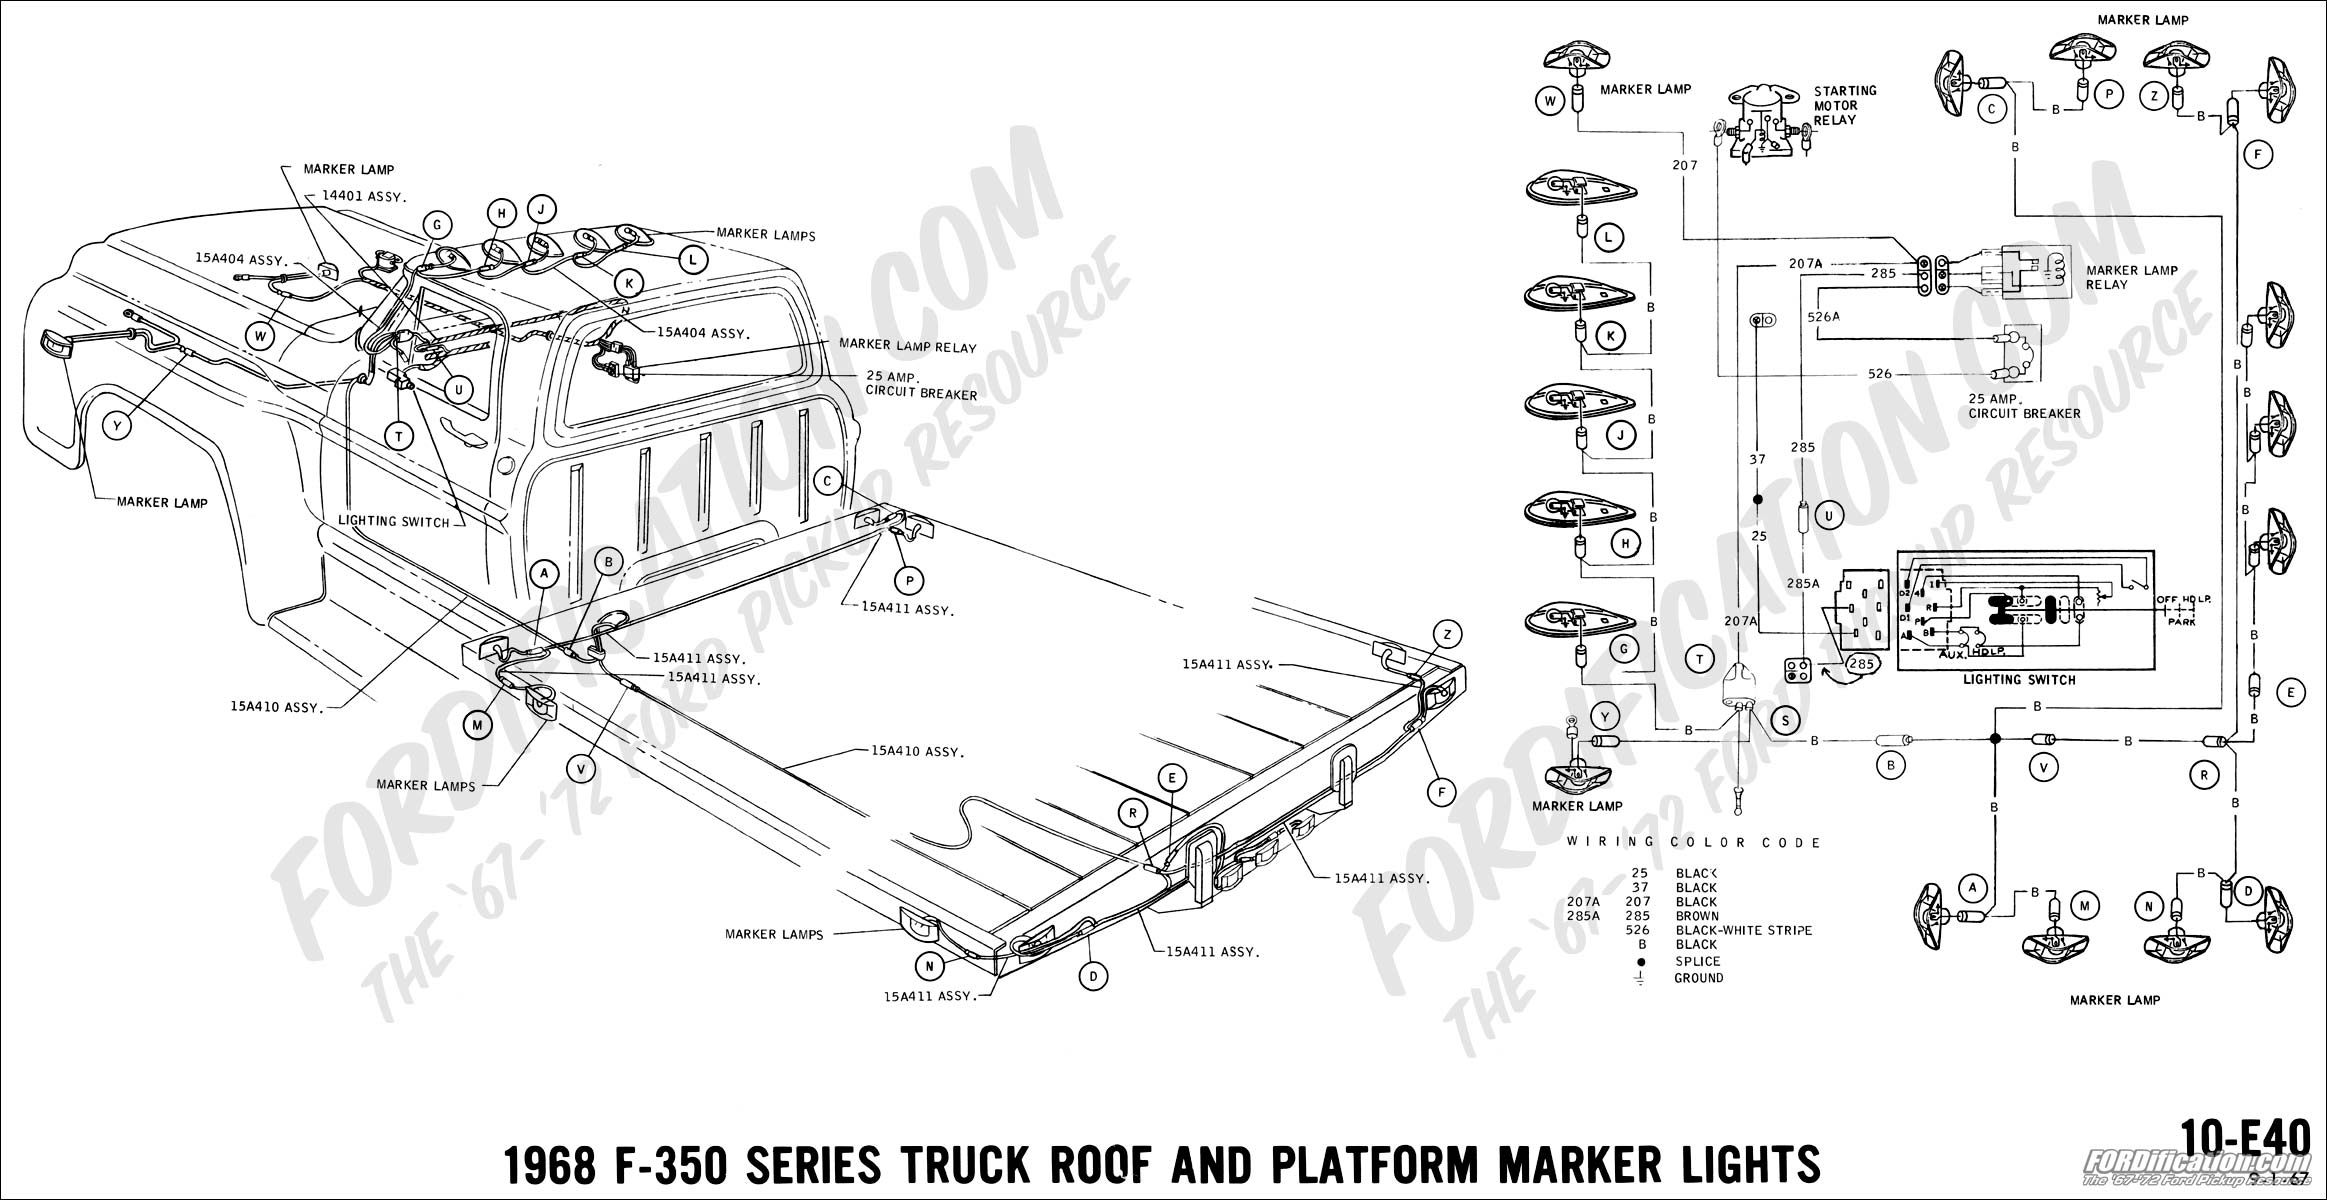 68 42 ford truck technical drawings and schematics section h wiring Peterbilt Truck Wiring Schematics at fashall.co